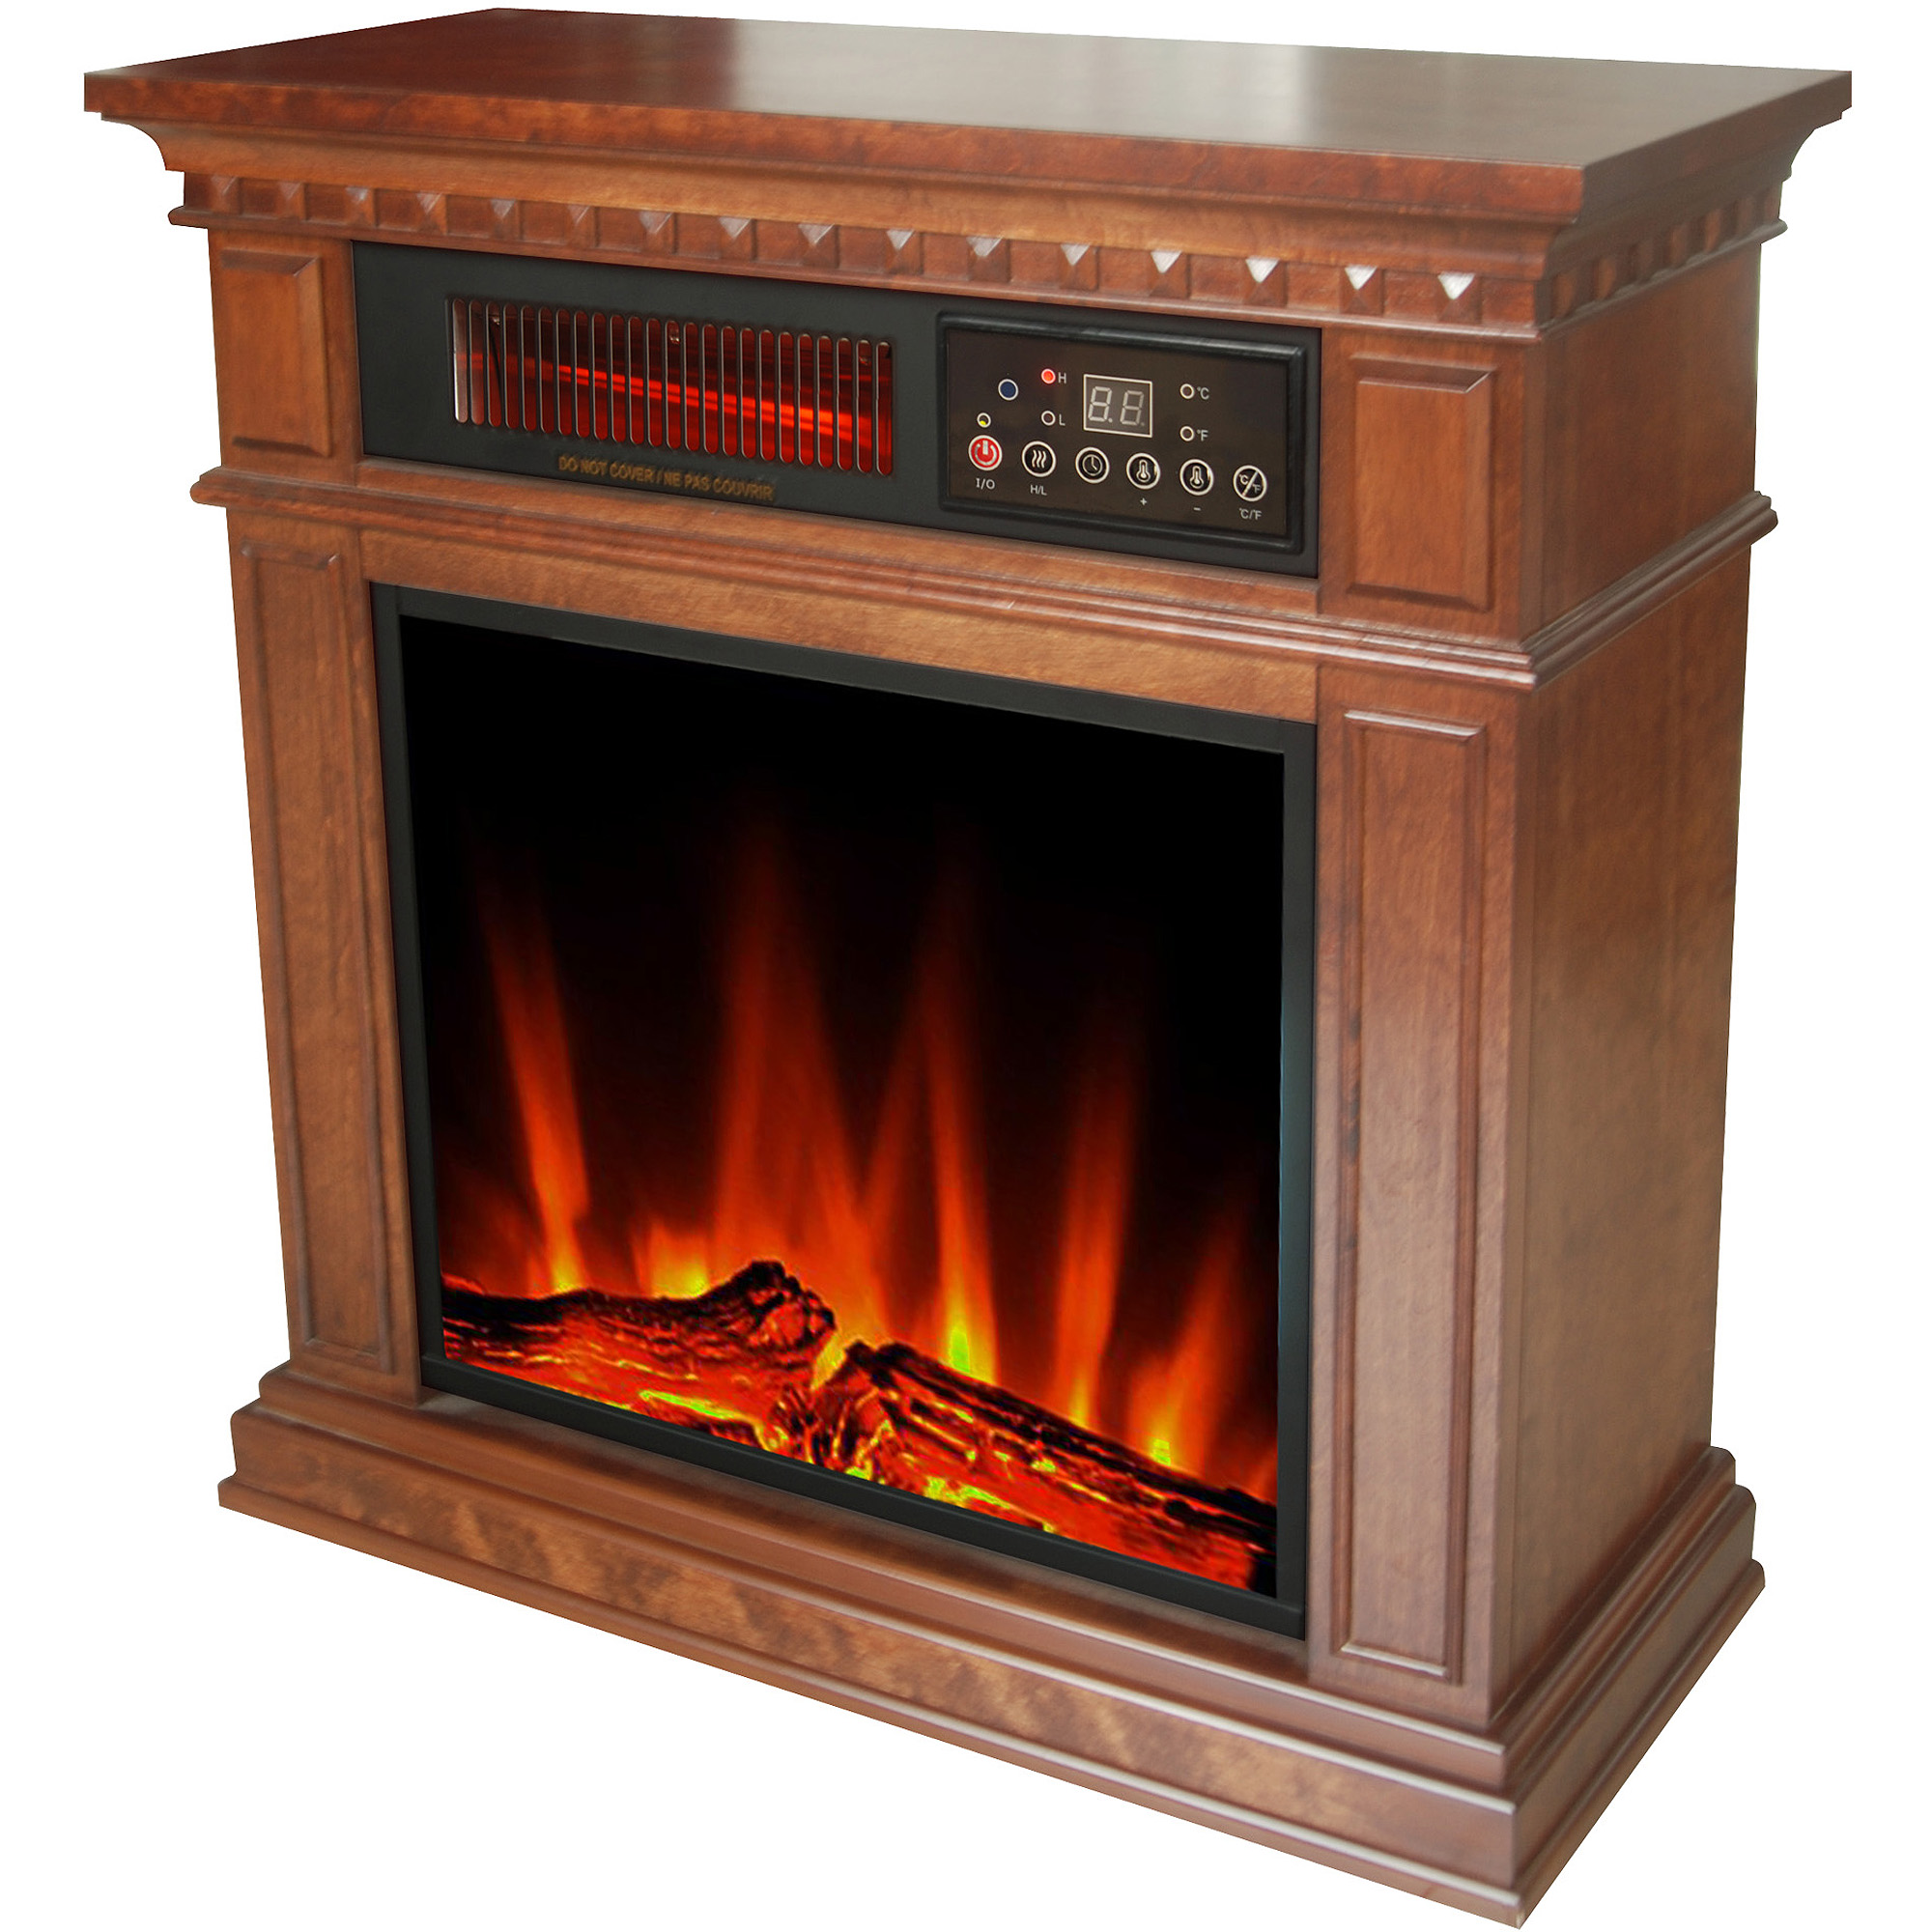 Buy Hearth Trends Dresden Infrared Fireplace at Walmart.com